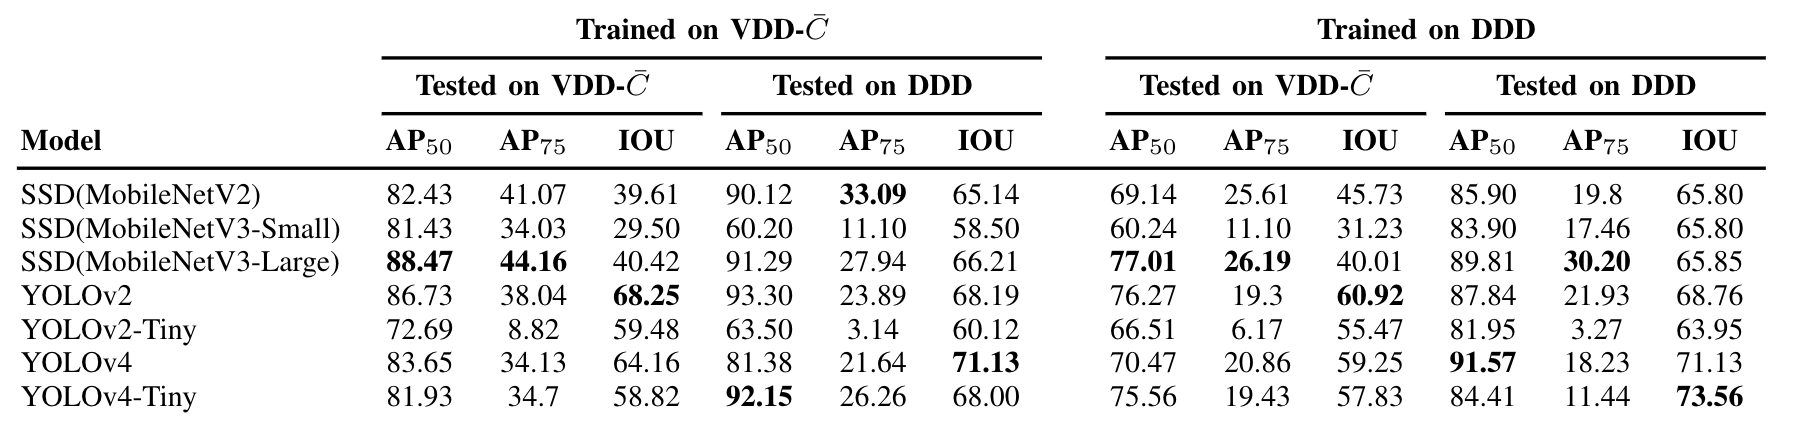 Various models tested and trained on both datasets